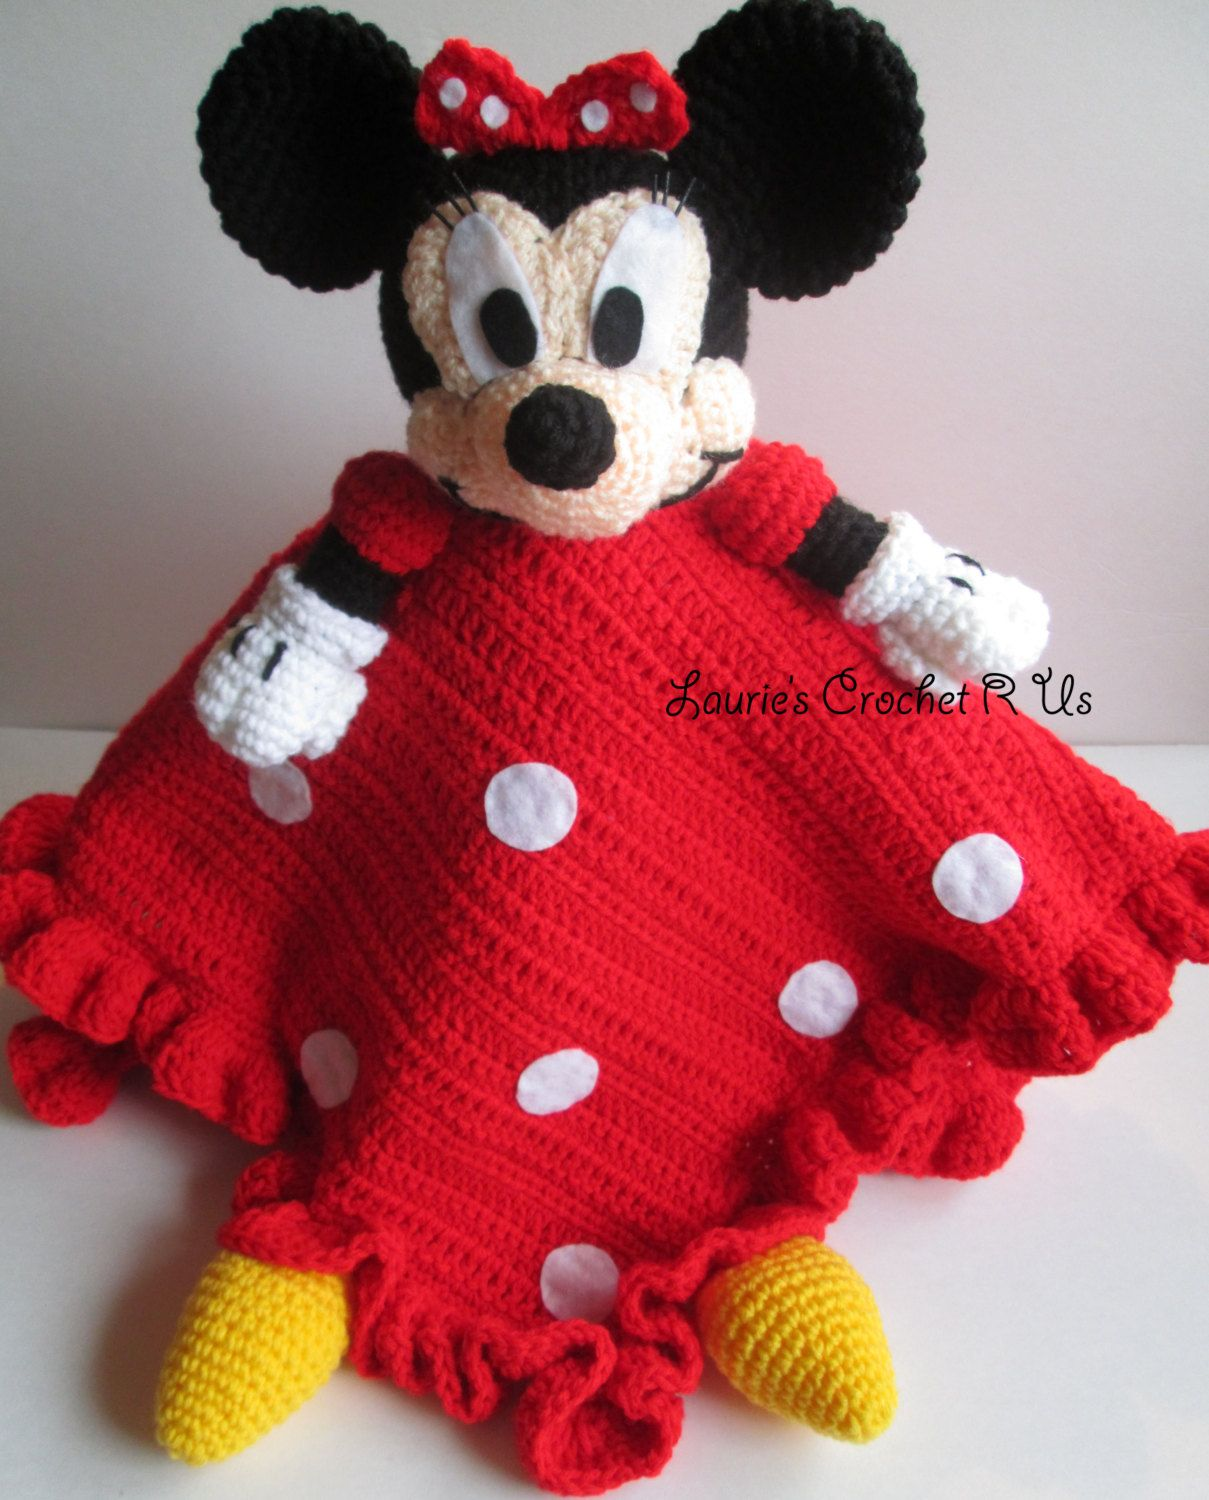 Handmade crochet minnie mouse security blanket crochet blanket handmade crochet minnie mouse security blanket crochet blanket baby blanket kids 4299 via etsy bankloansurffo Choice Image